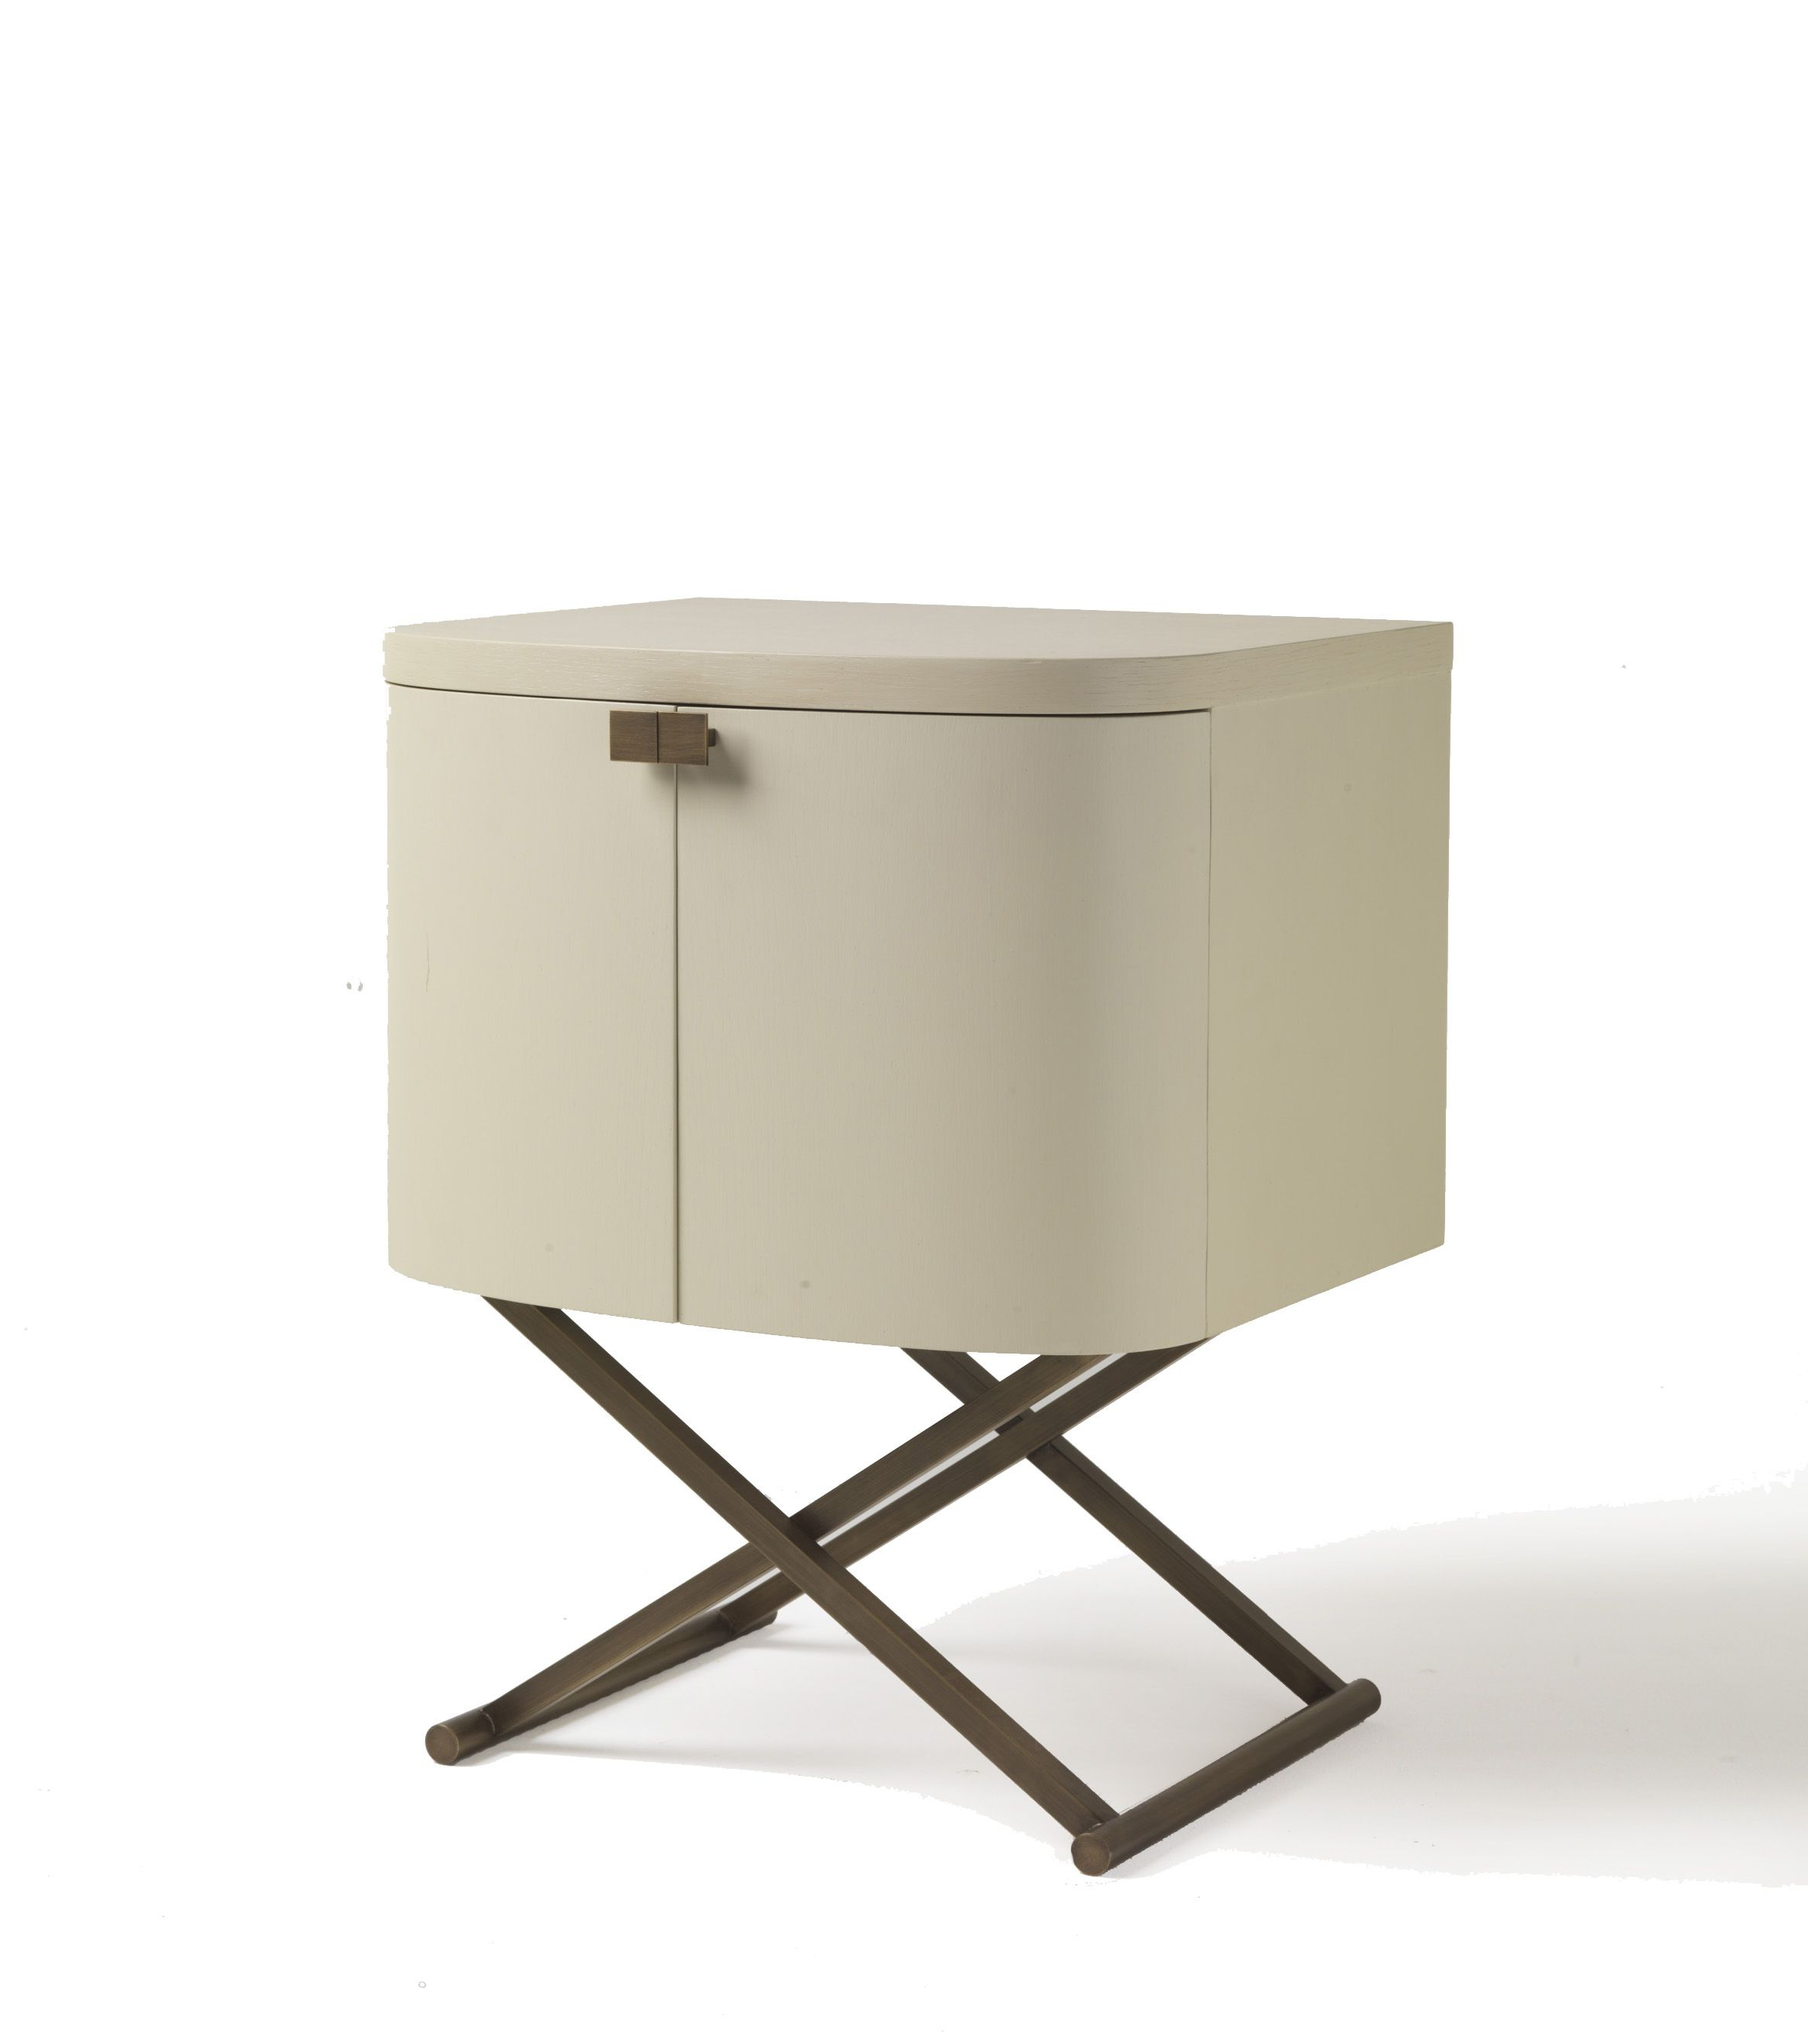 Archer Humphryes | T Able – Desk – Vanity | Sideboard Intended For Festival Eclipse Credenzas (View 1 of 20)